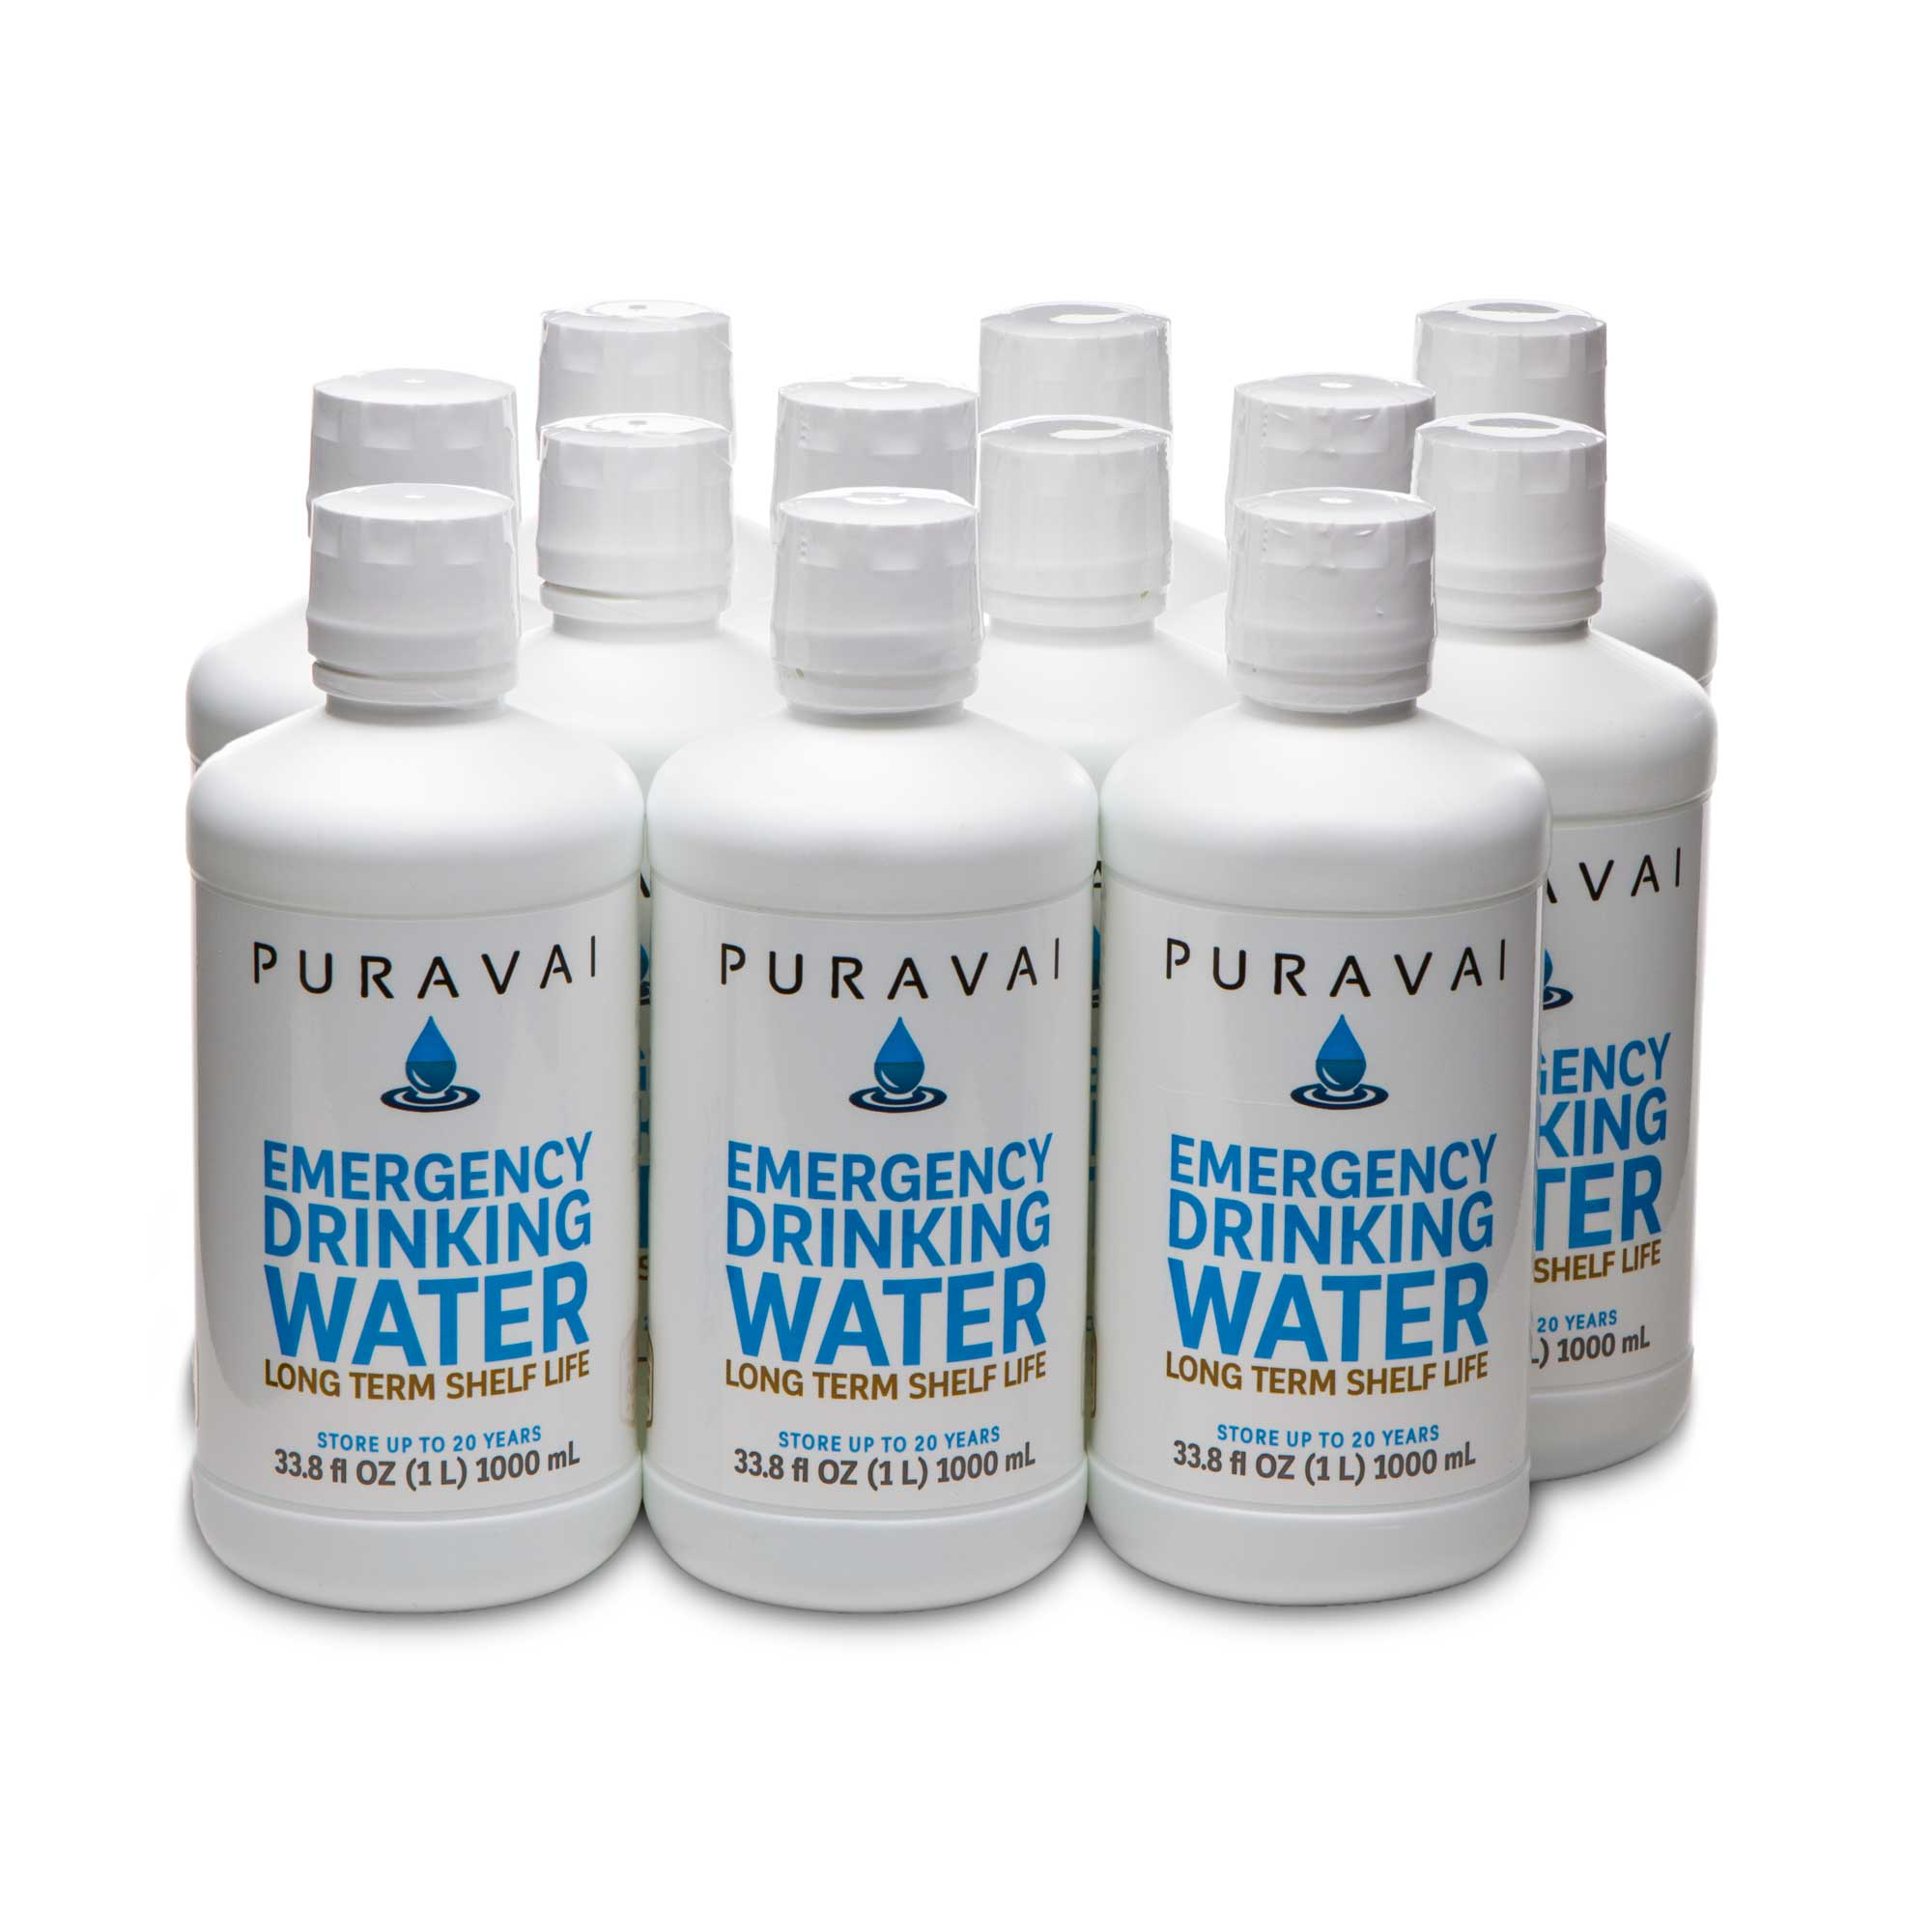 PURAVAI EMERGENCY DRINKING WATER 24 PK